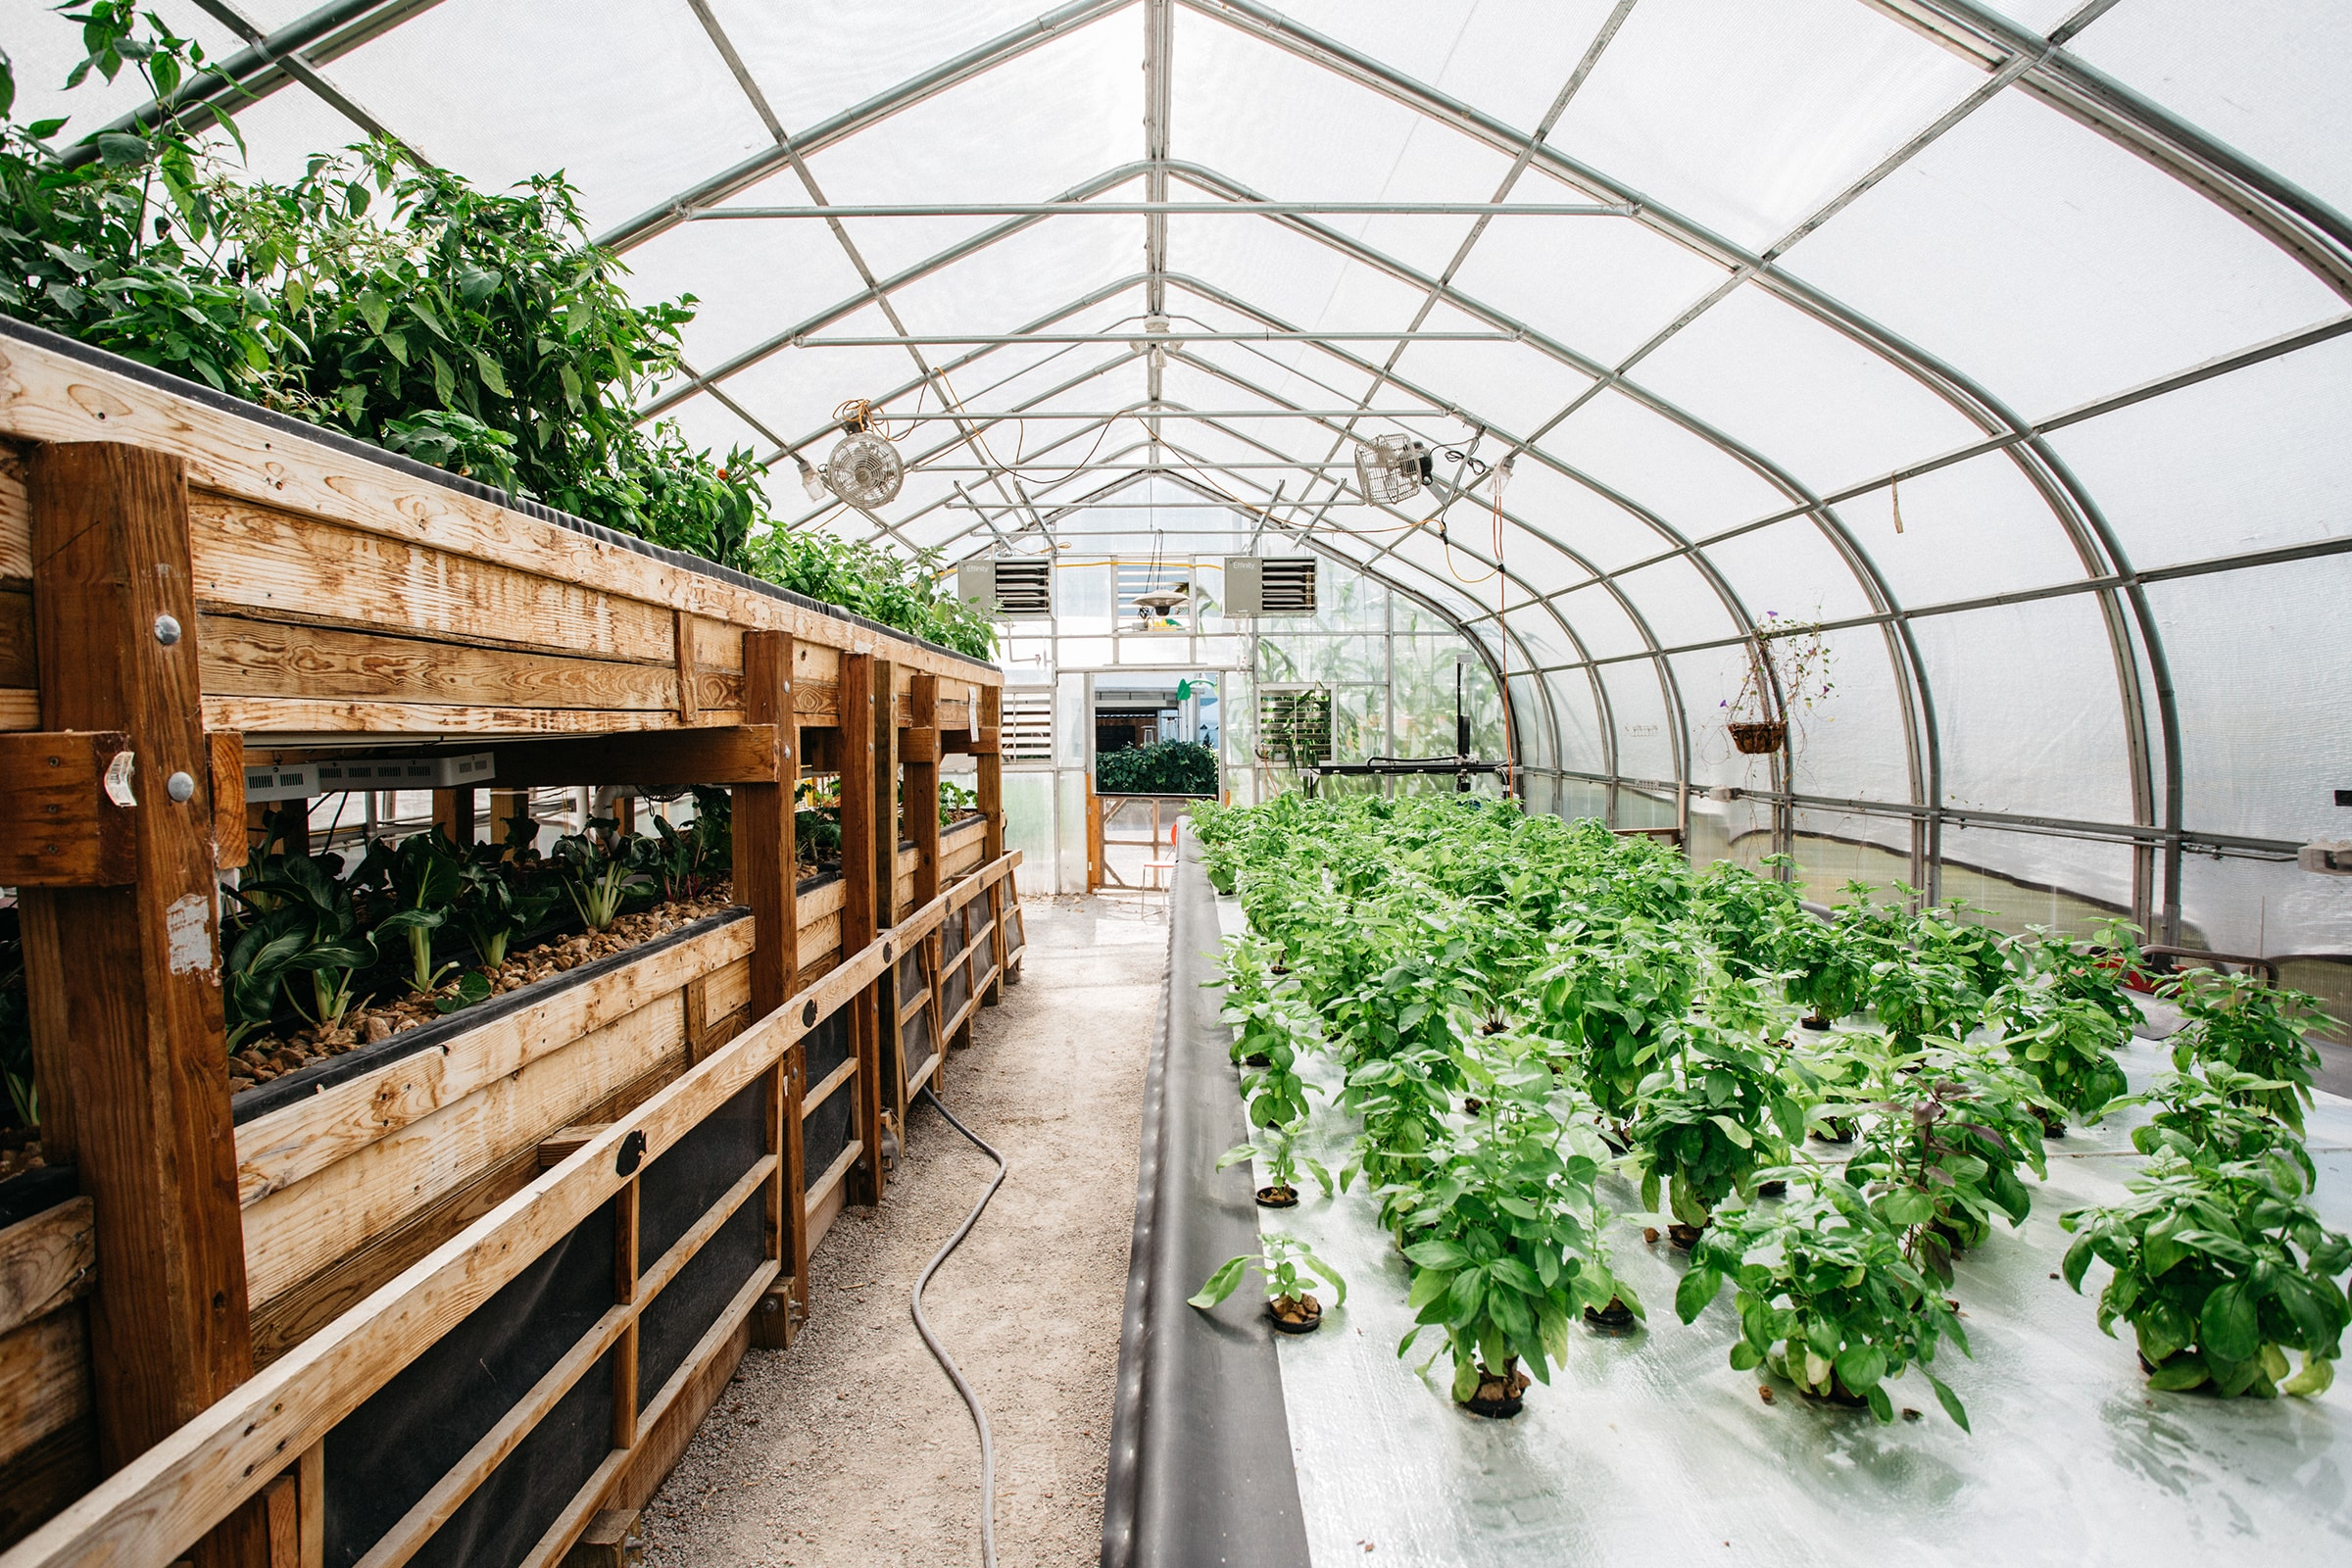 GROW greenhouse